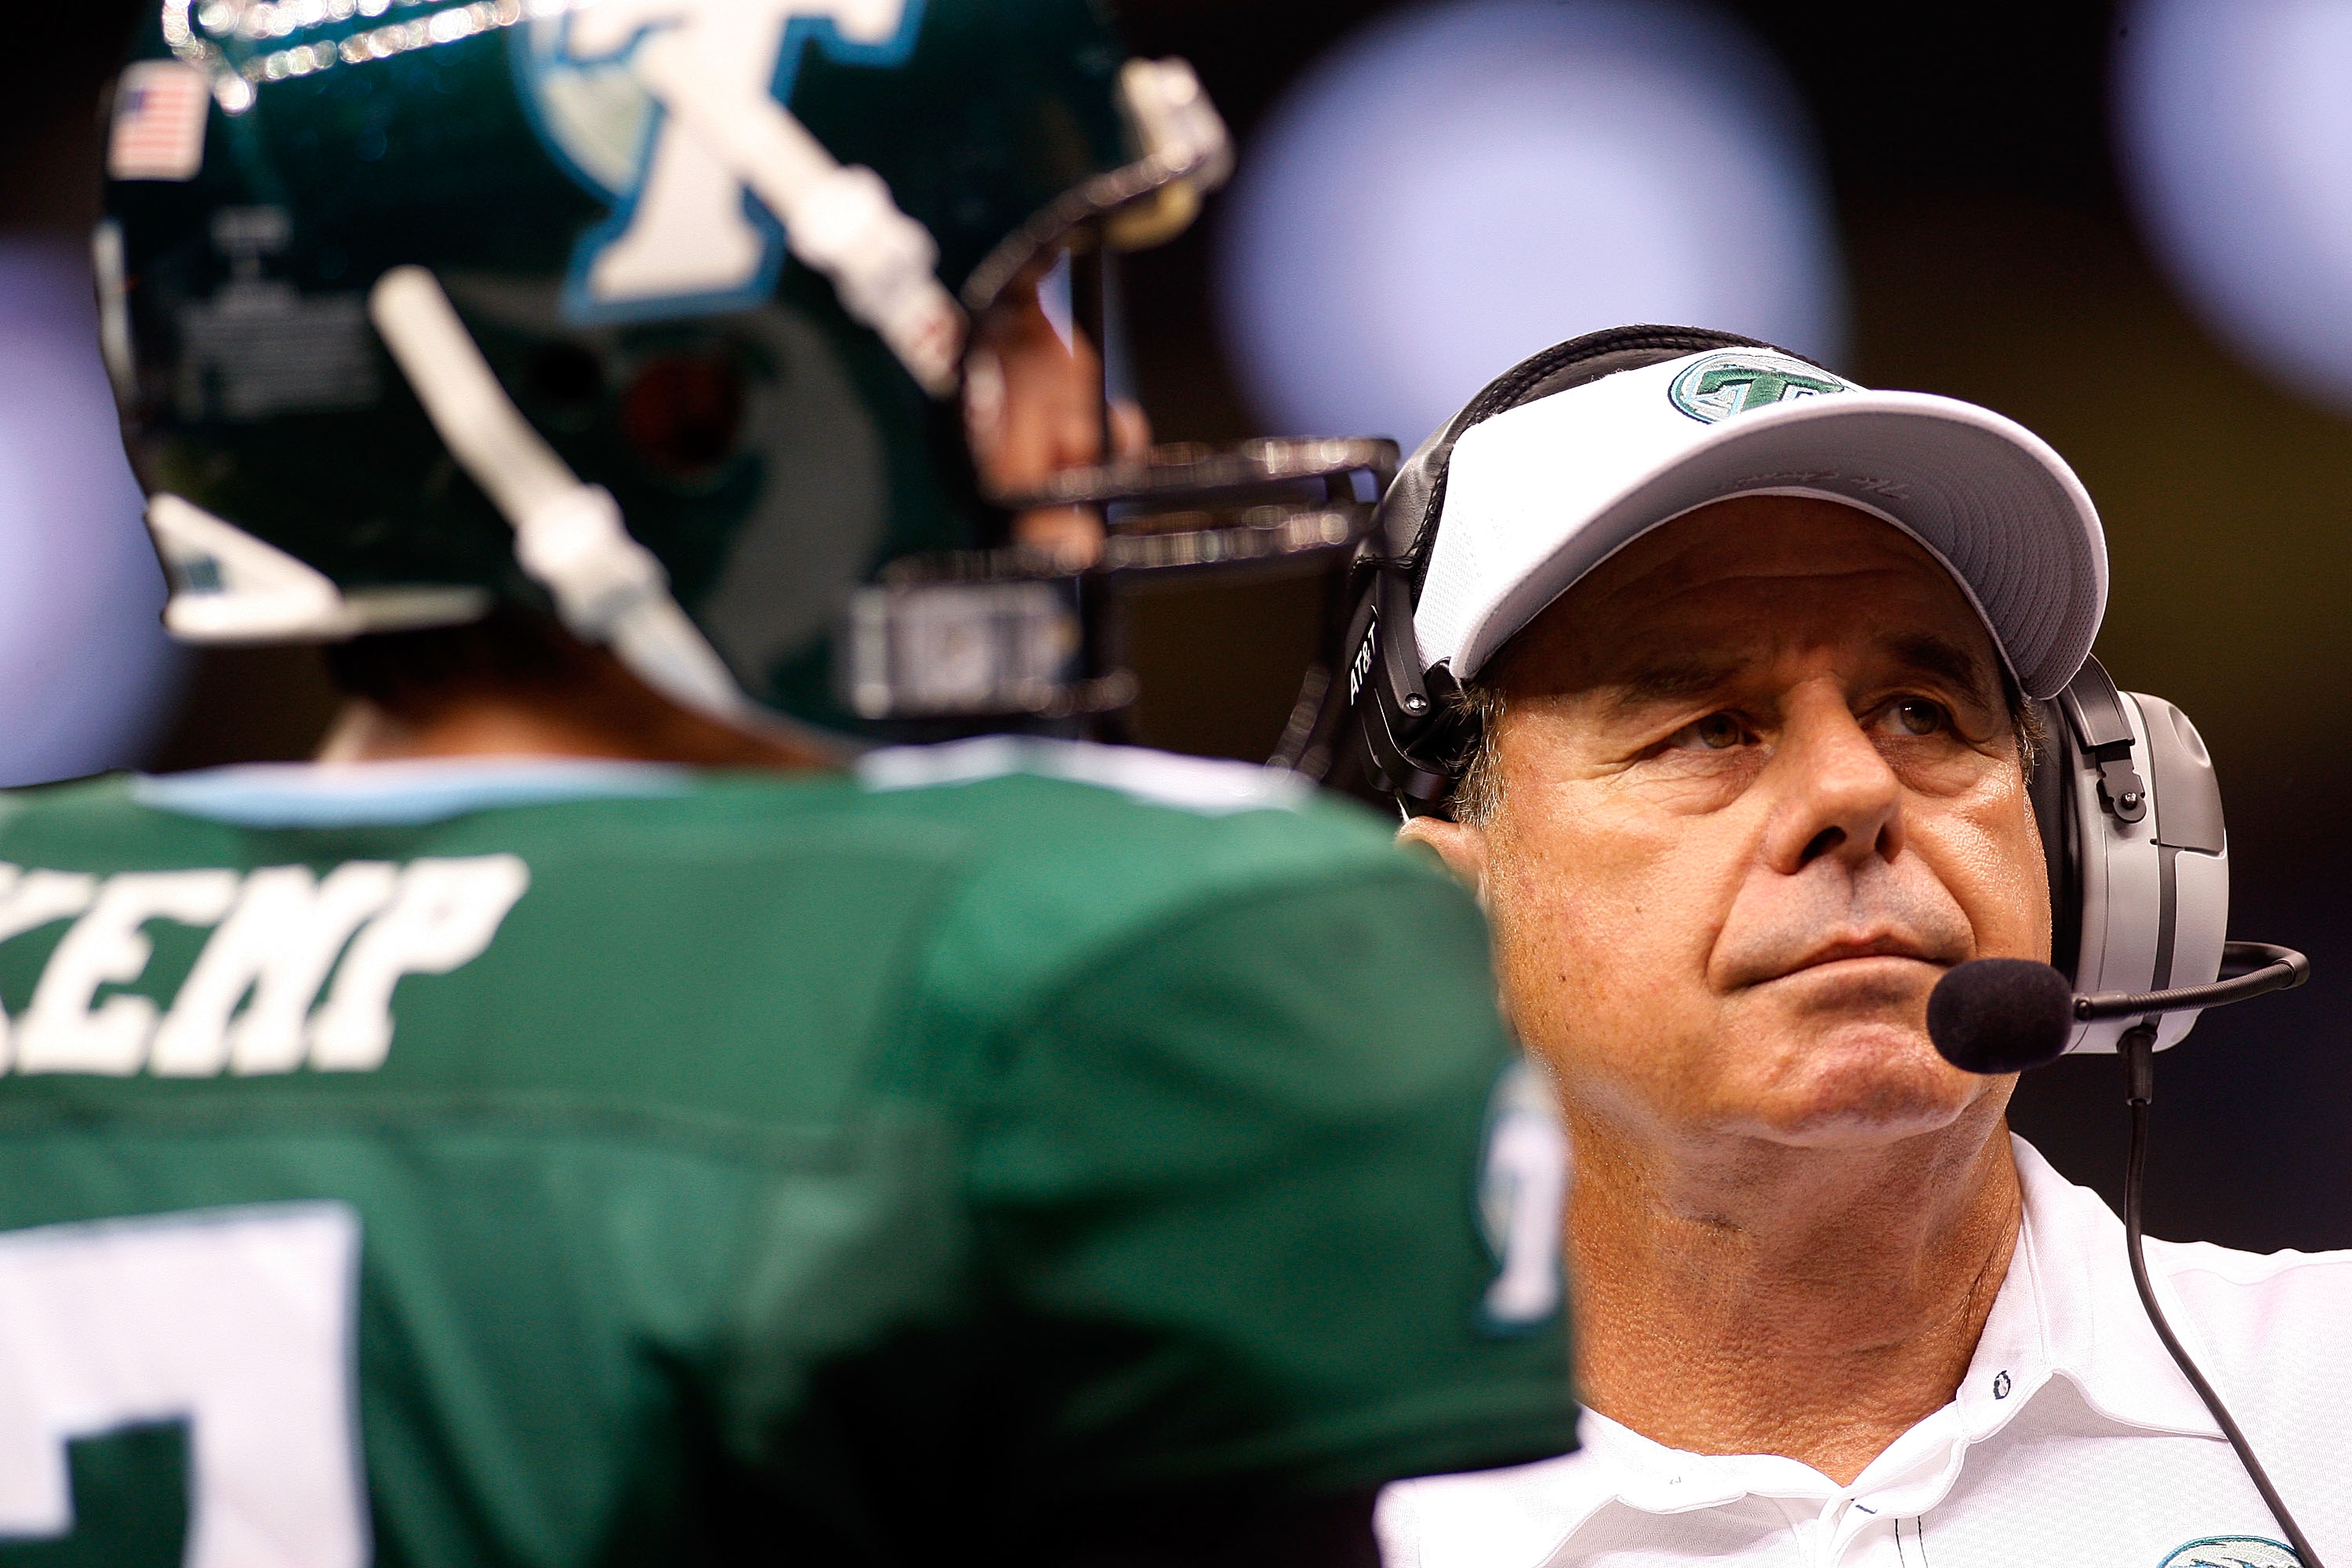 NEW ORLEANS - SEPTEMBER 04:  Head coach Bob Toledo talks with quarterback Joe Kemp #7 of the Tulane Green Wave during a timeout against the Tulsa Golden Hurricanes at the Louisiana Superdome on September 4, 2009 in New Orleans, Louisiana.  (Photo by Chris